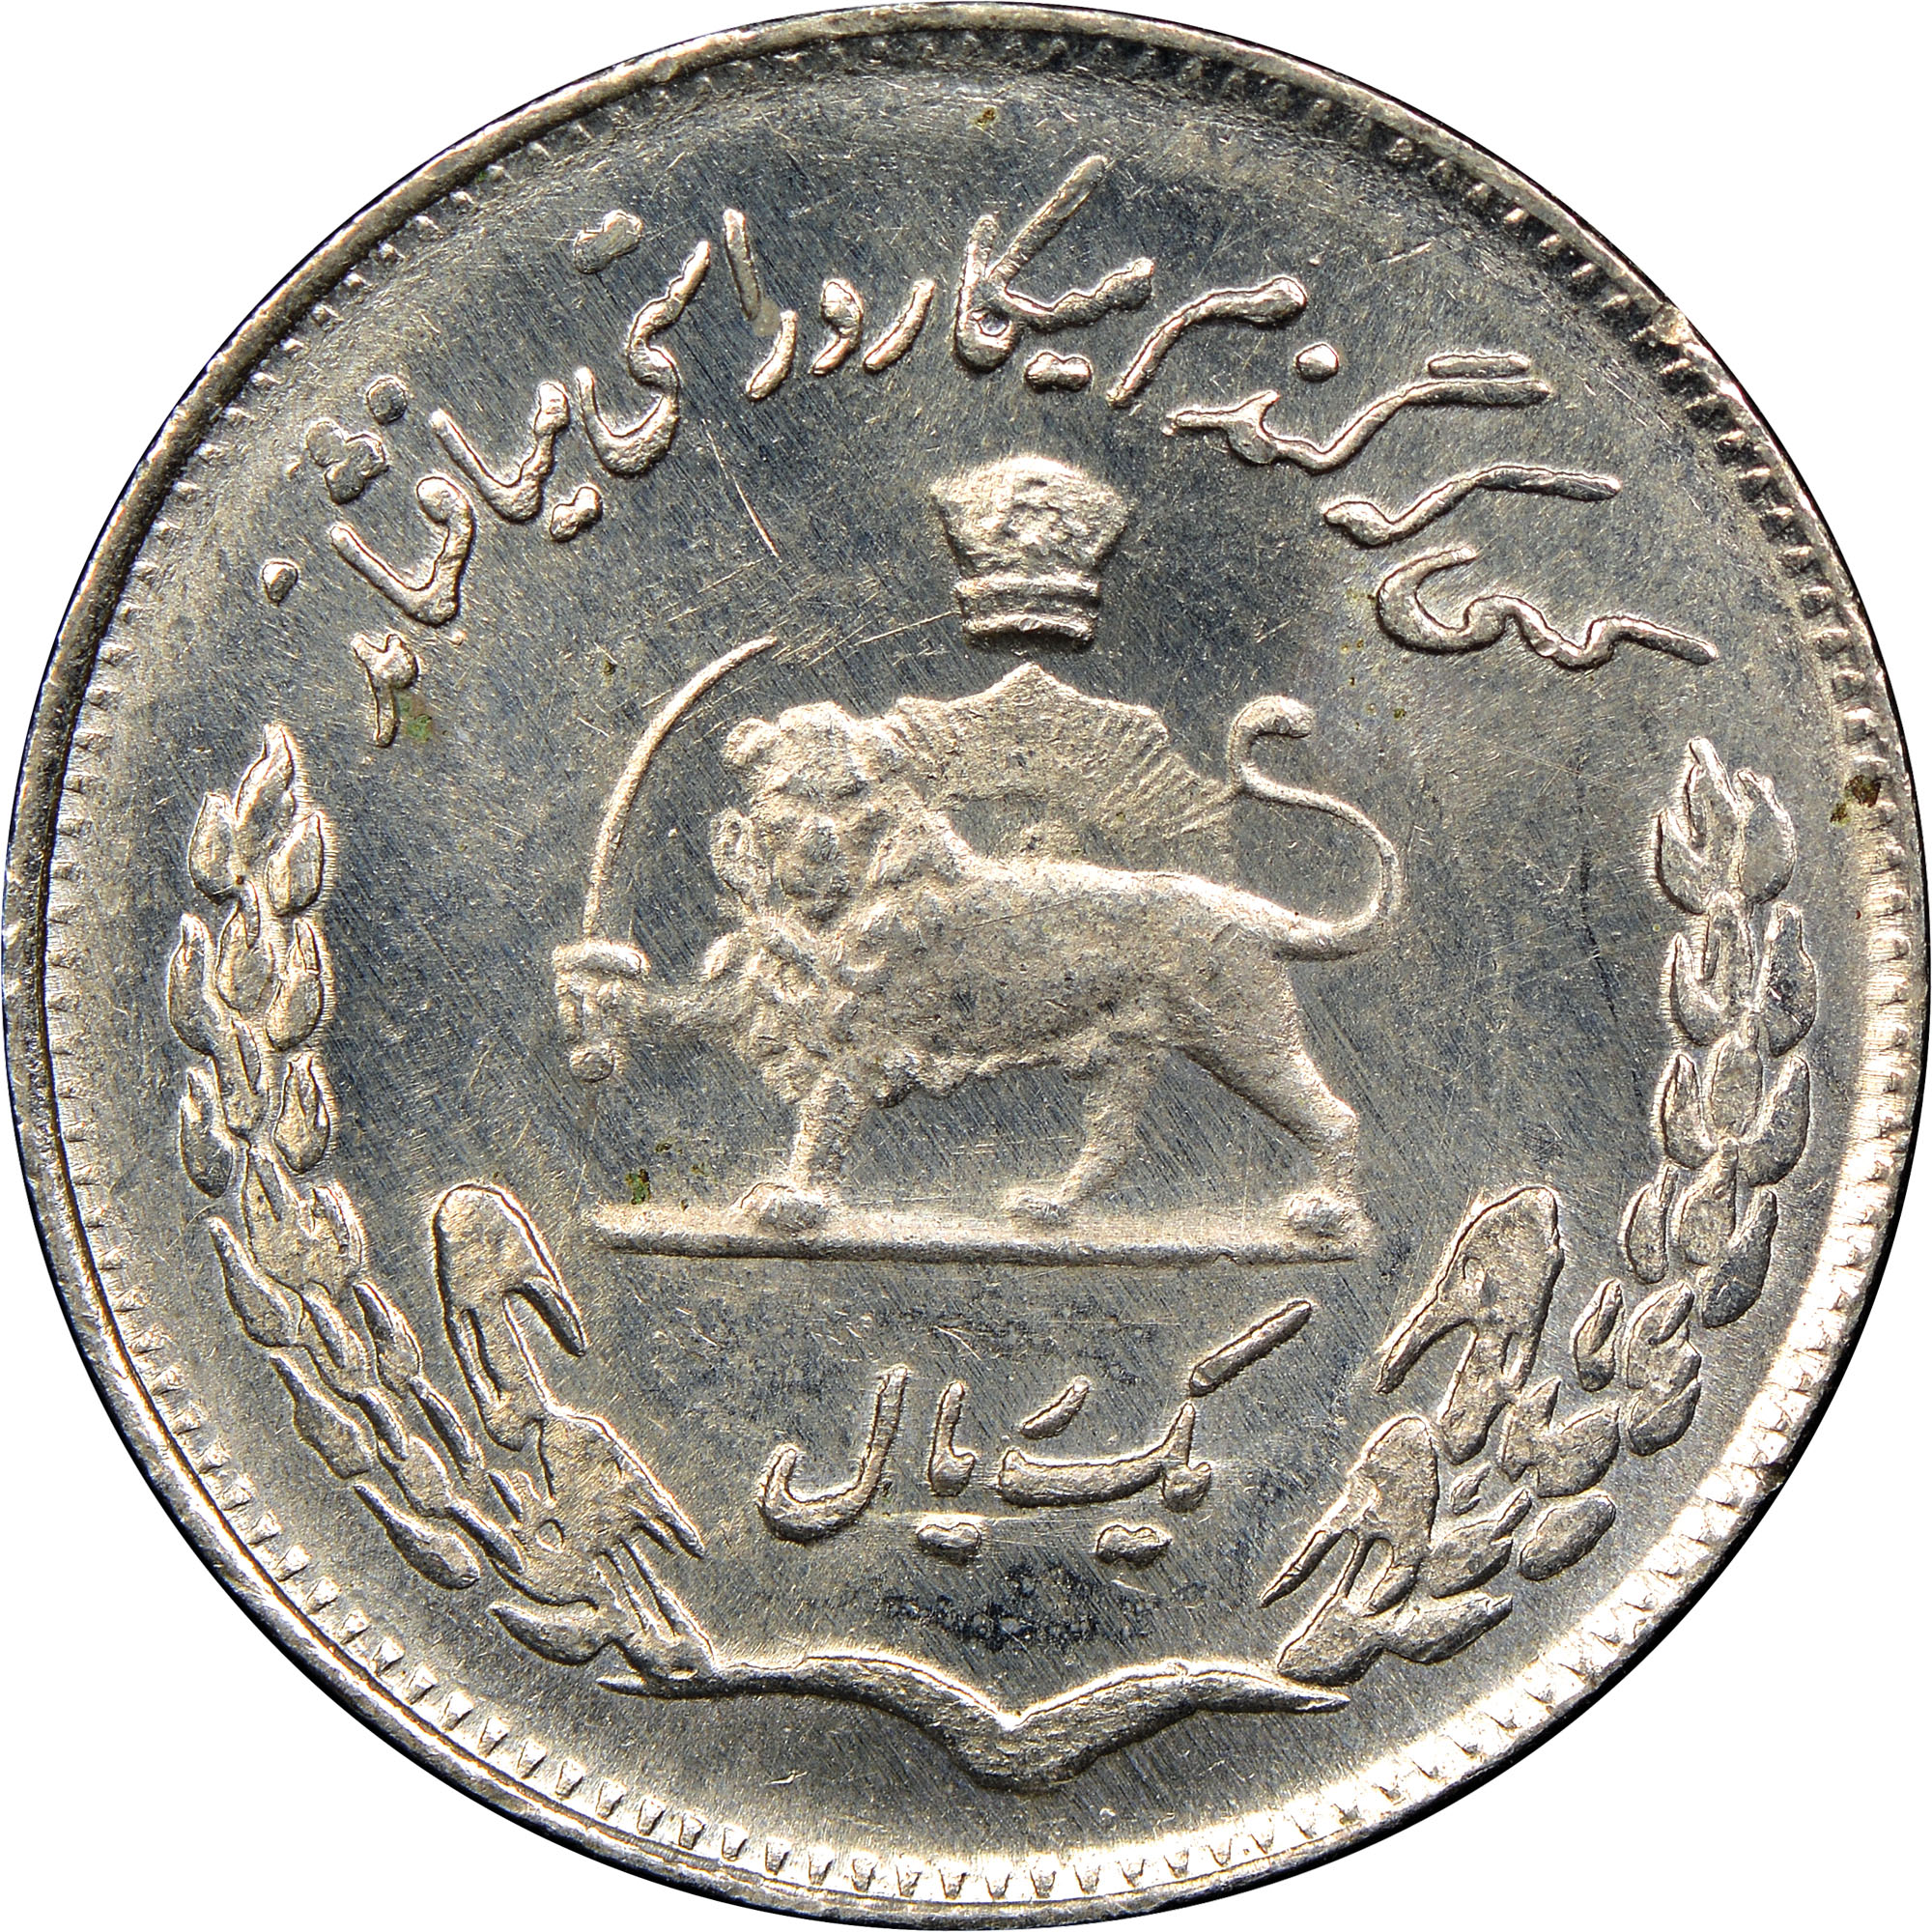 dating iranian coins dating a volunteer firefighter